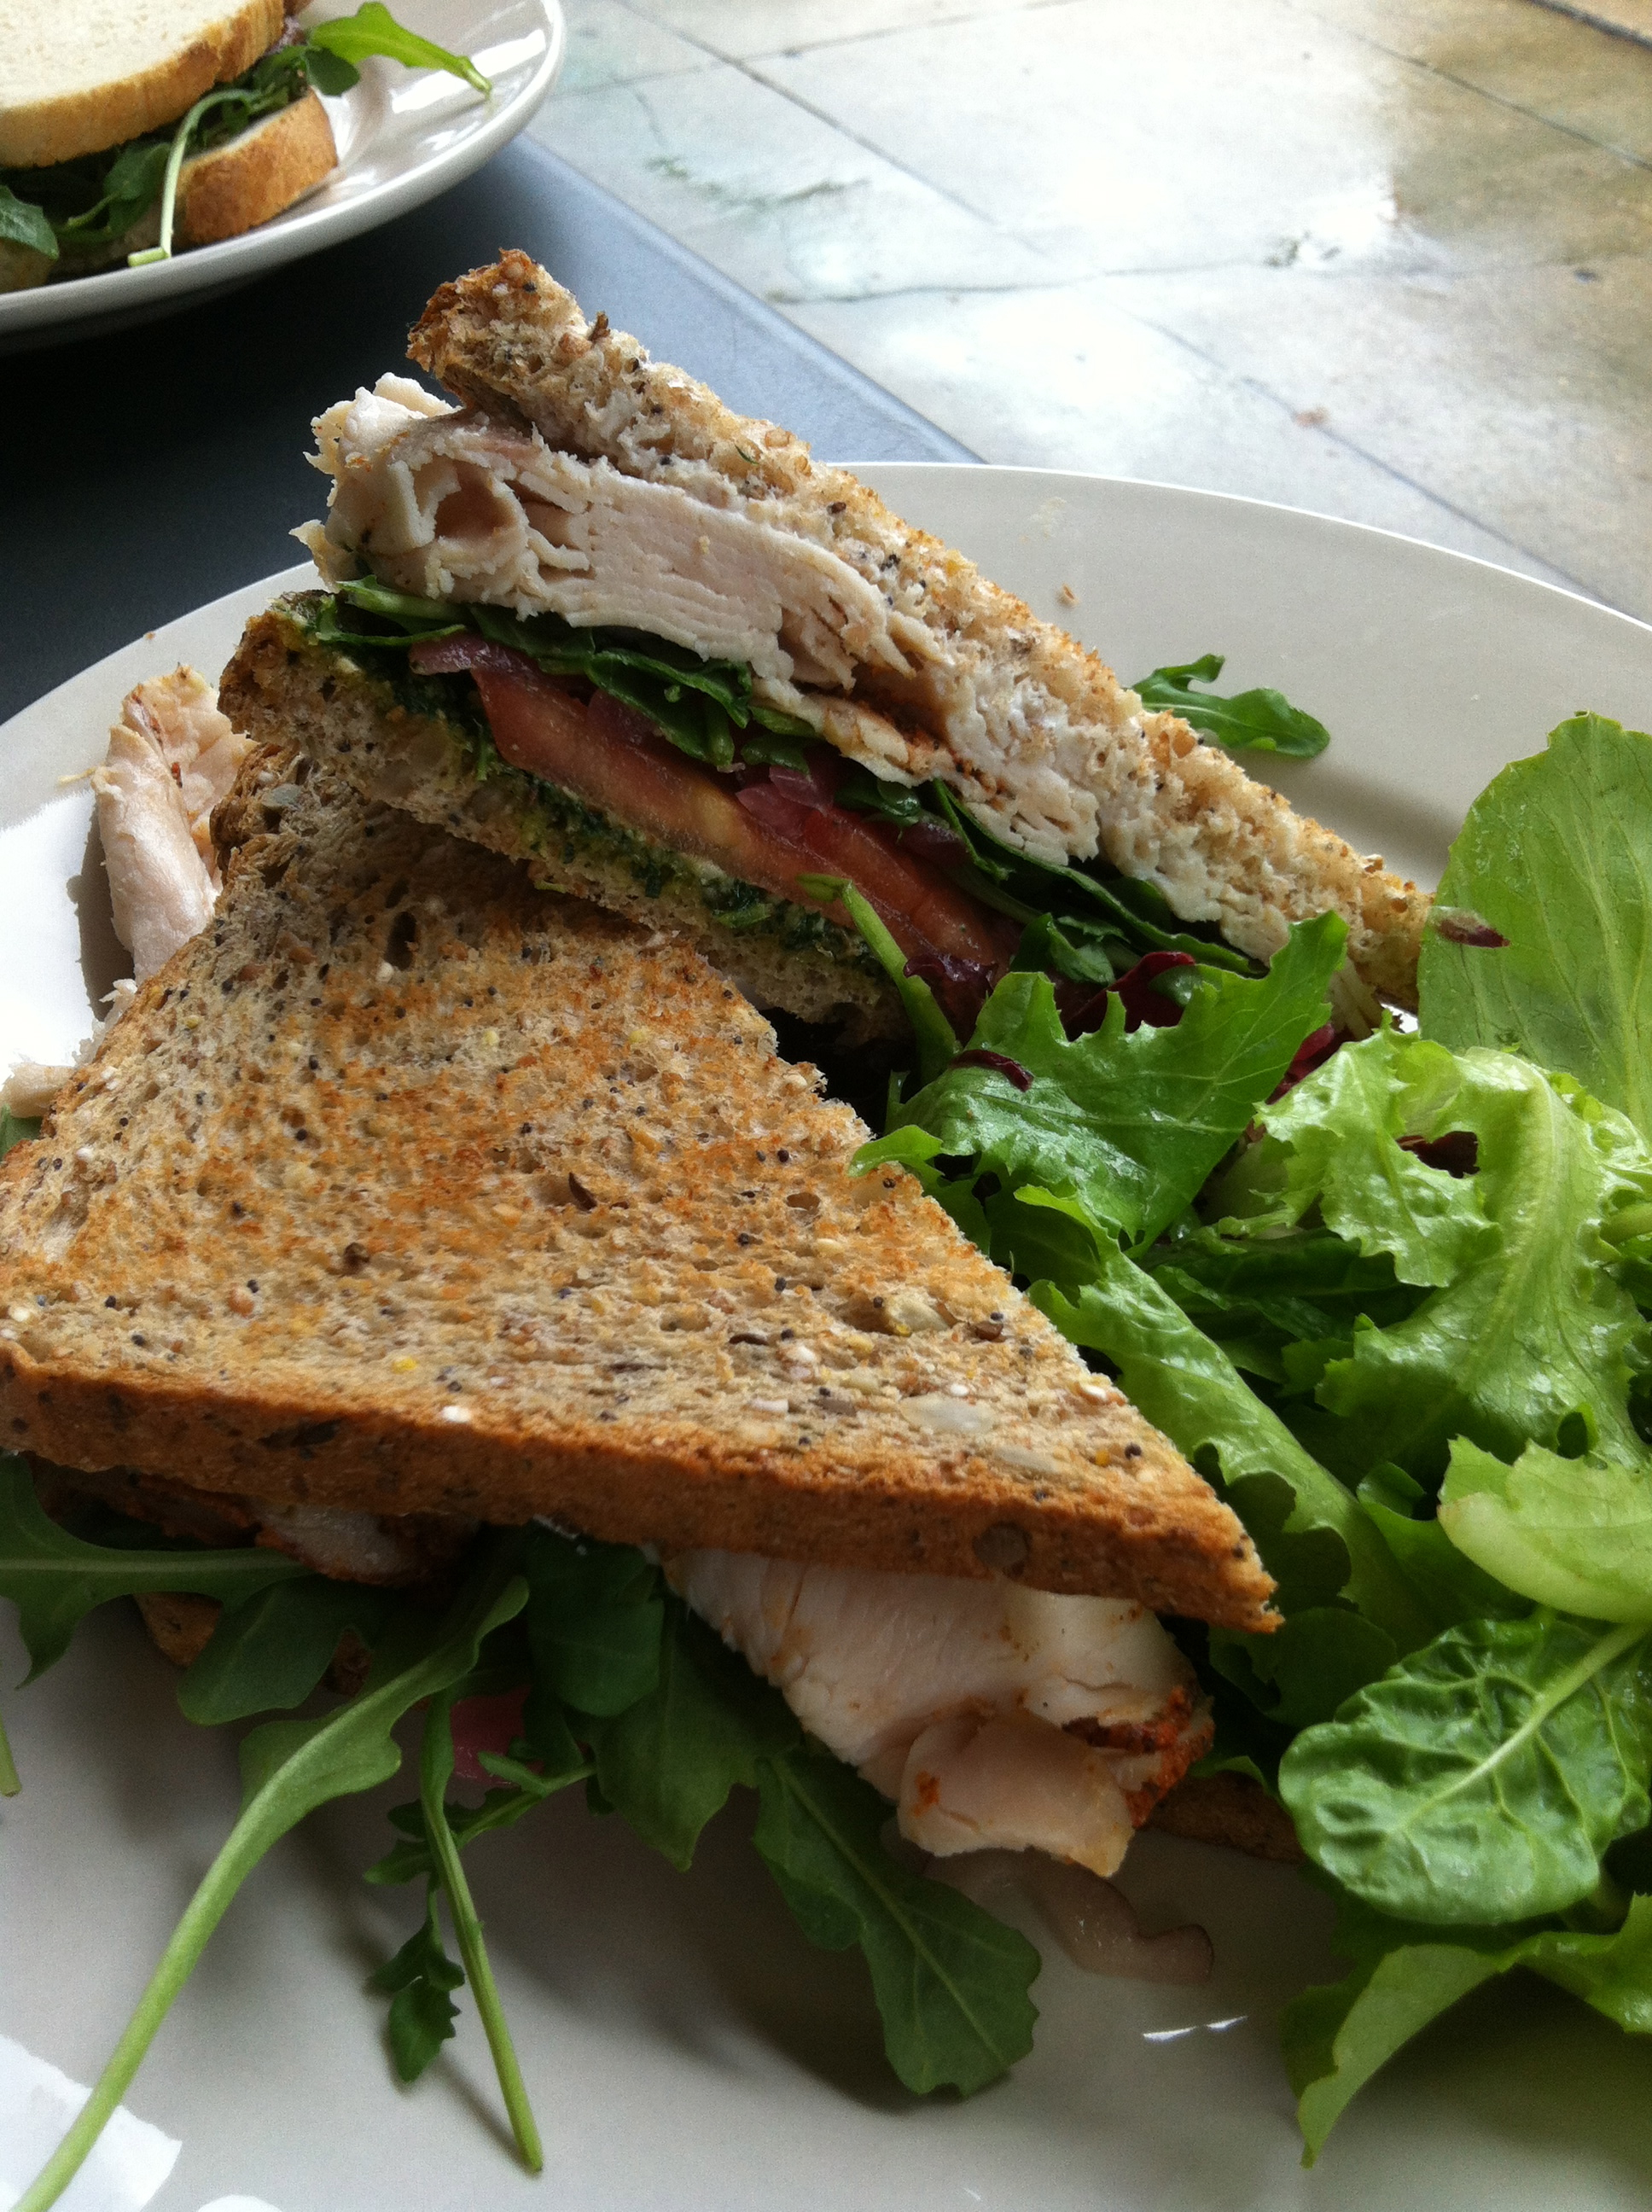 Turkey sandwich on wheat instead of ciabatta – they use the Whole ...